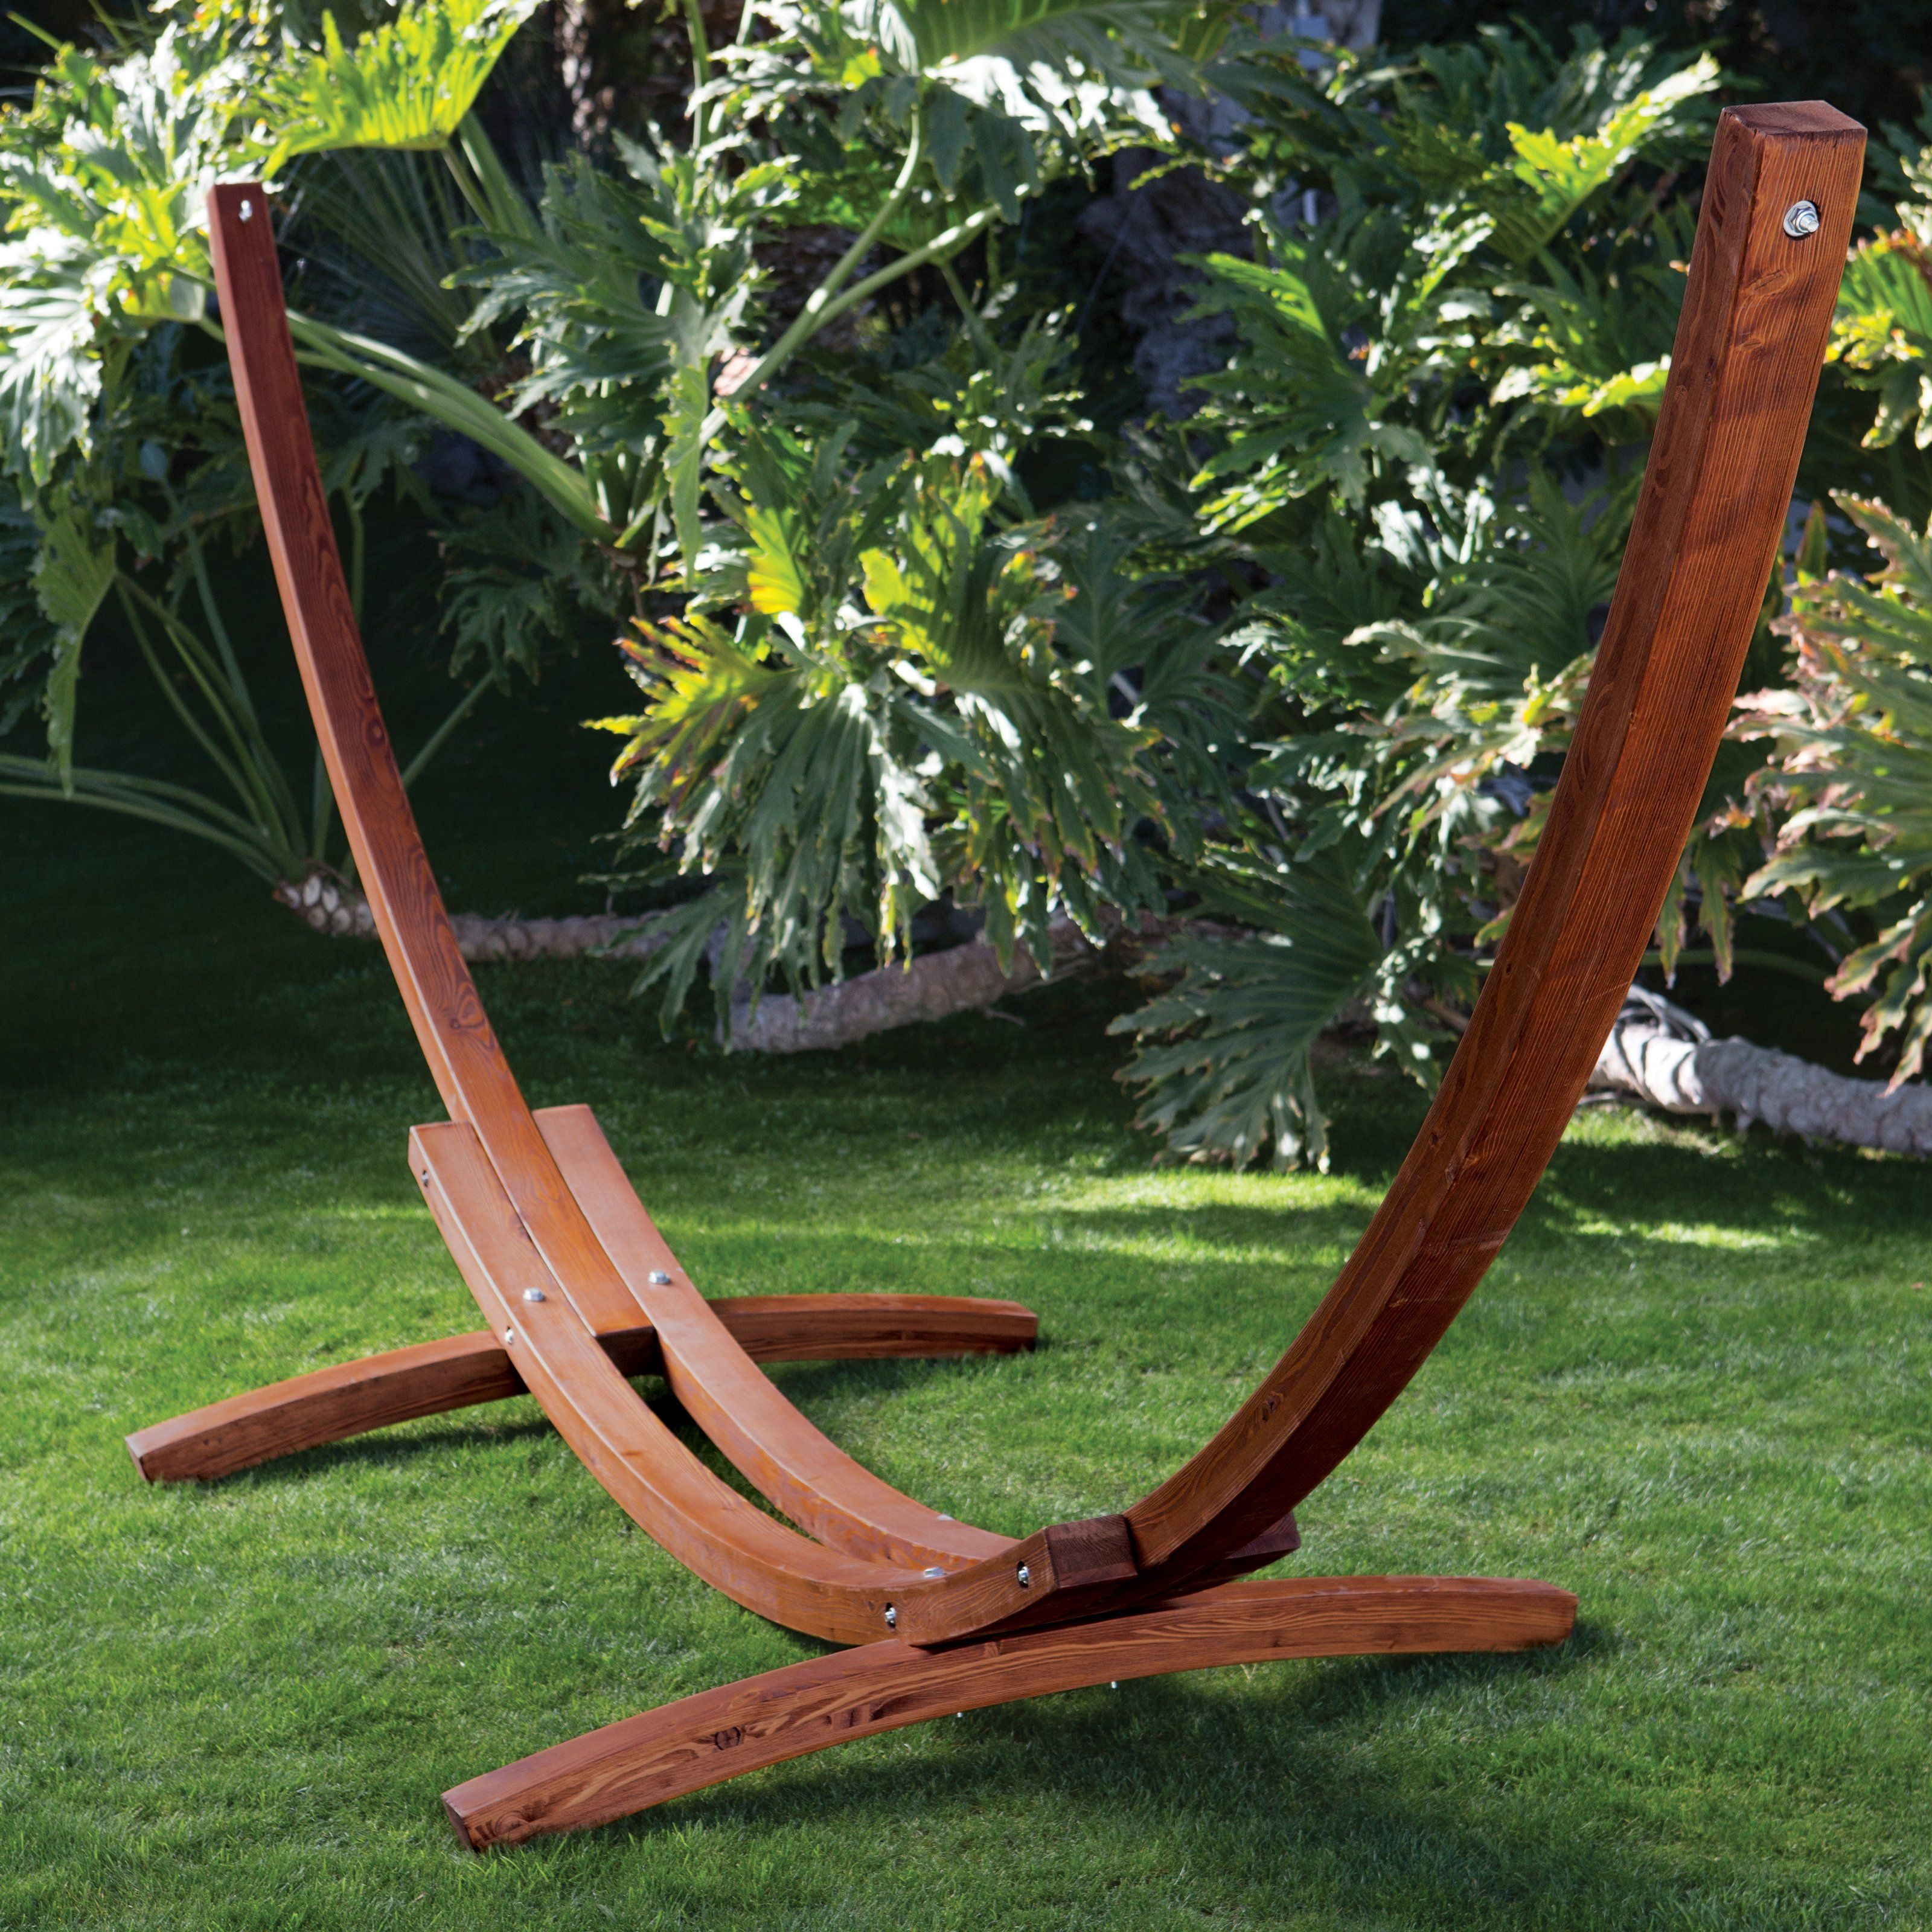 algoma 15ft russian pine wood arc hammock stand   you u0027ve got a  fortable hammock algoma 15ft russian pine wood arc hammock stand   you u0027ve got a      rh   pinterest